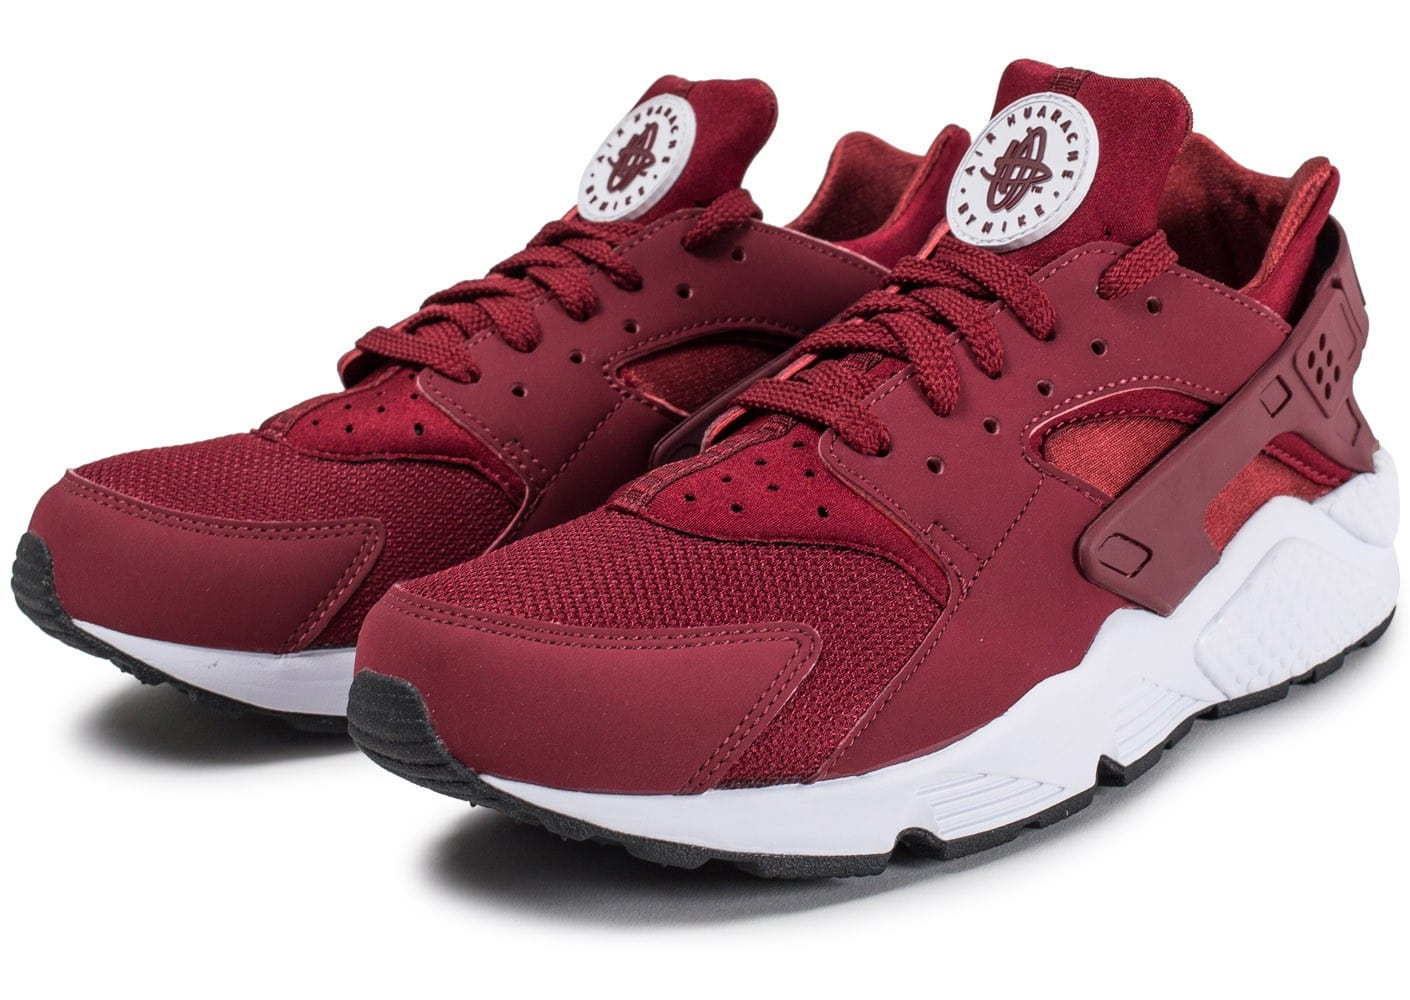 pick up 0880e 7d009 nike air huarache femme bordeaux